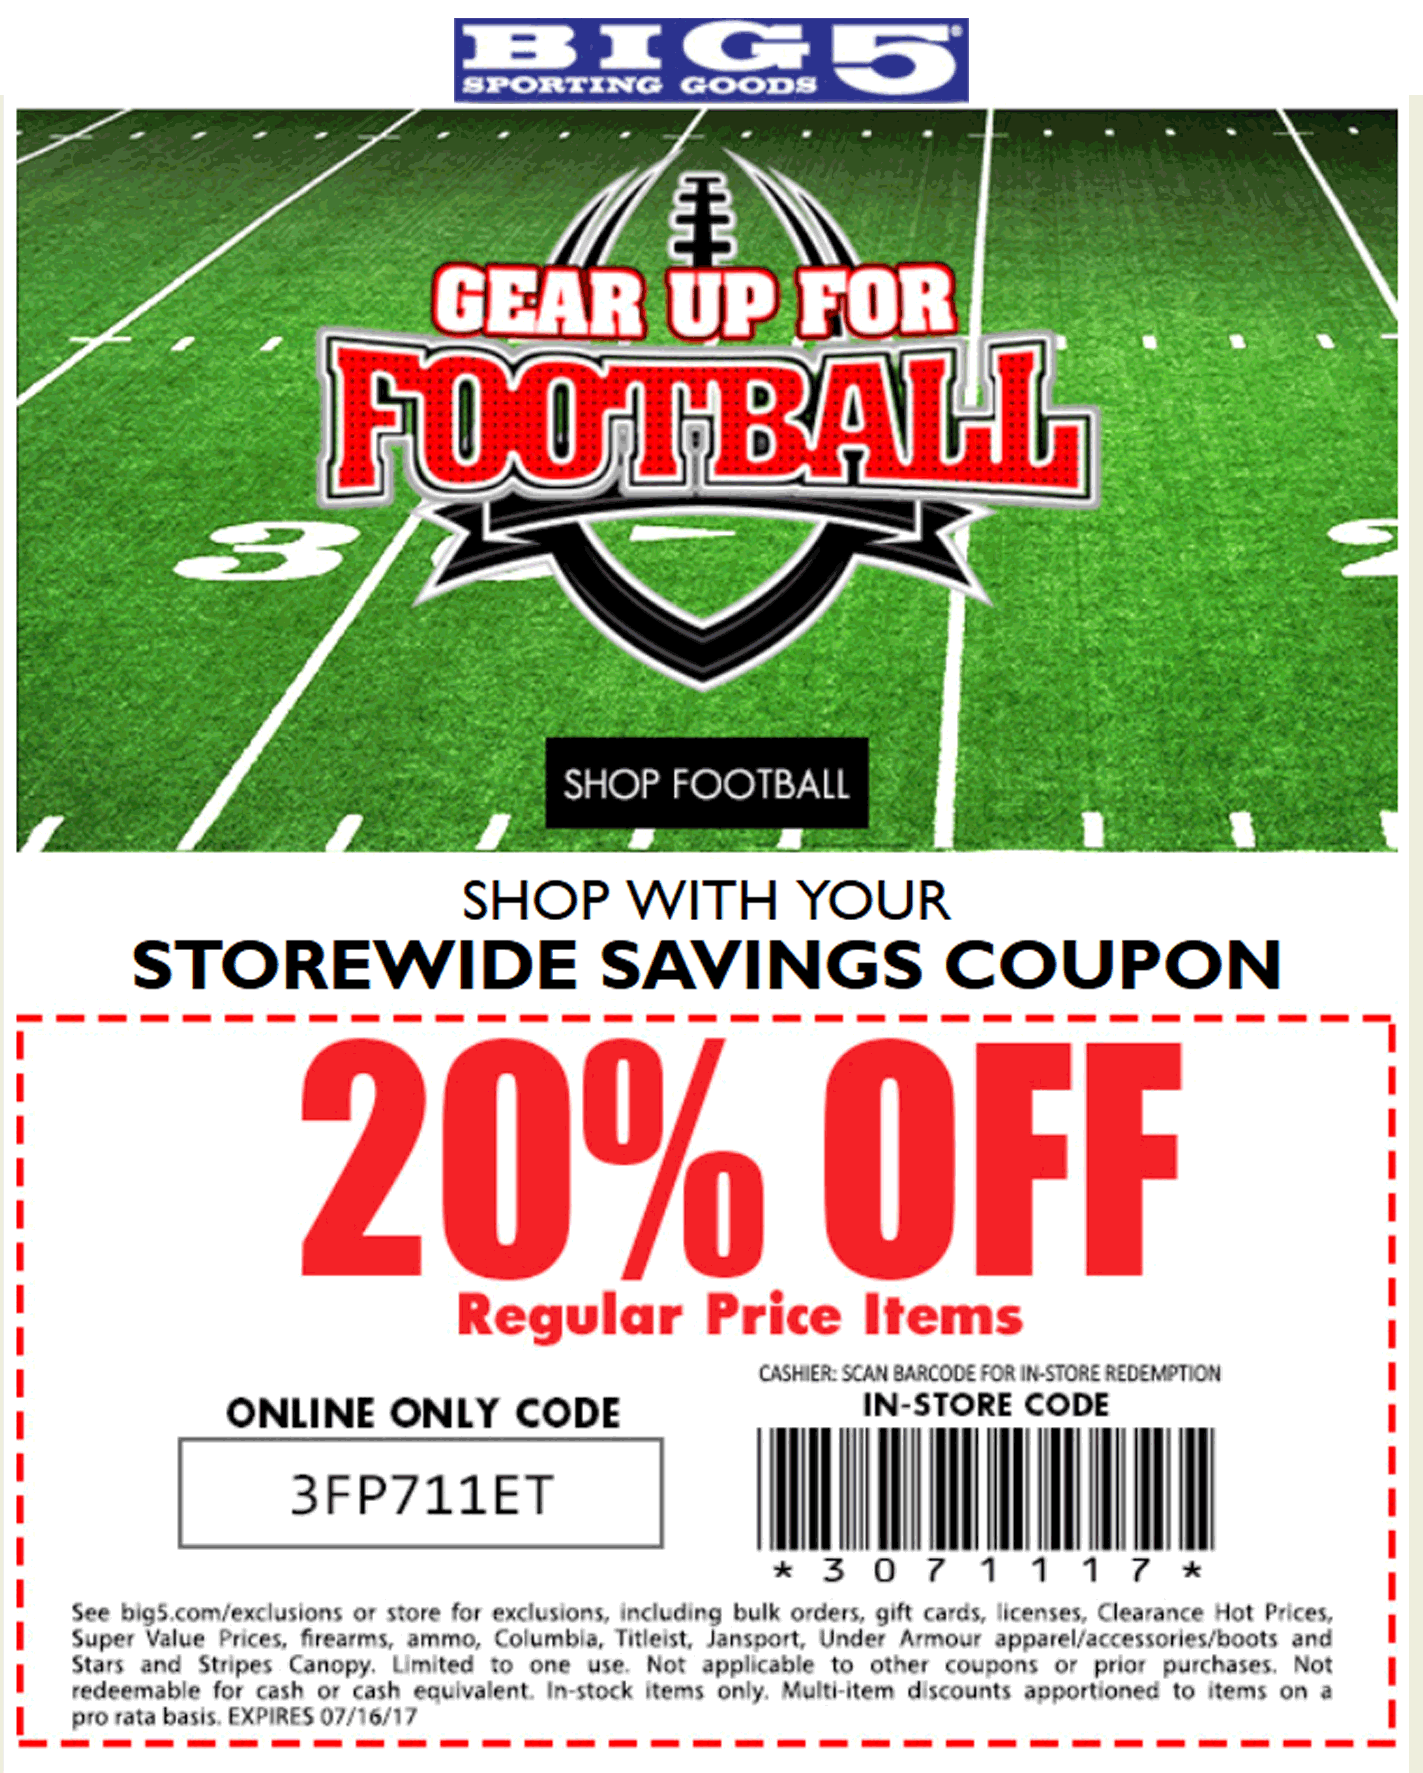 Big 5 Coupon October 2018 20% off at Big 5 sporting goods, or online via promo code 3FP711ET